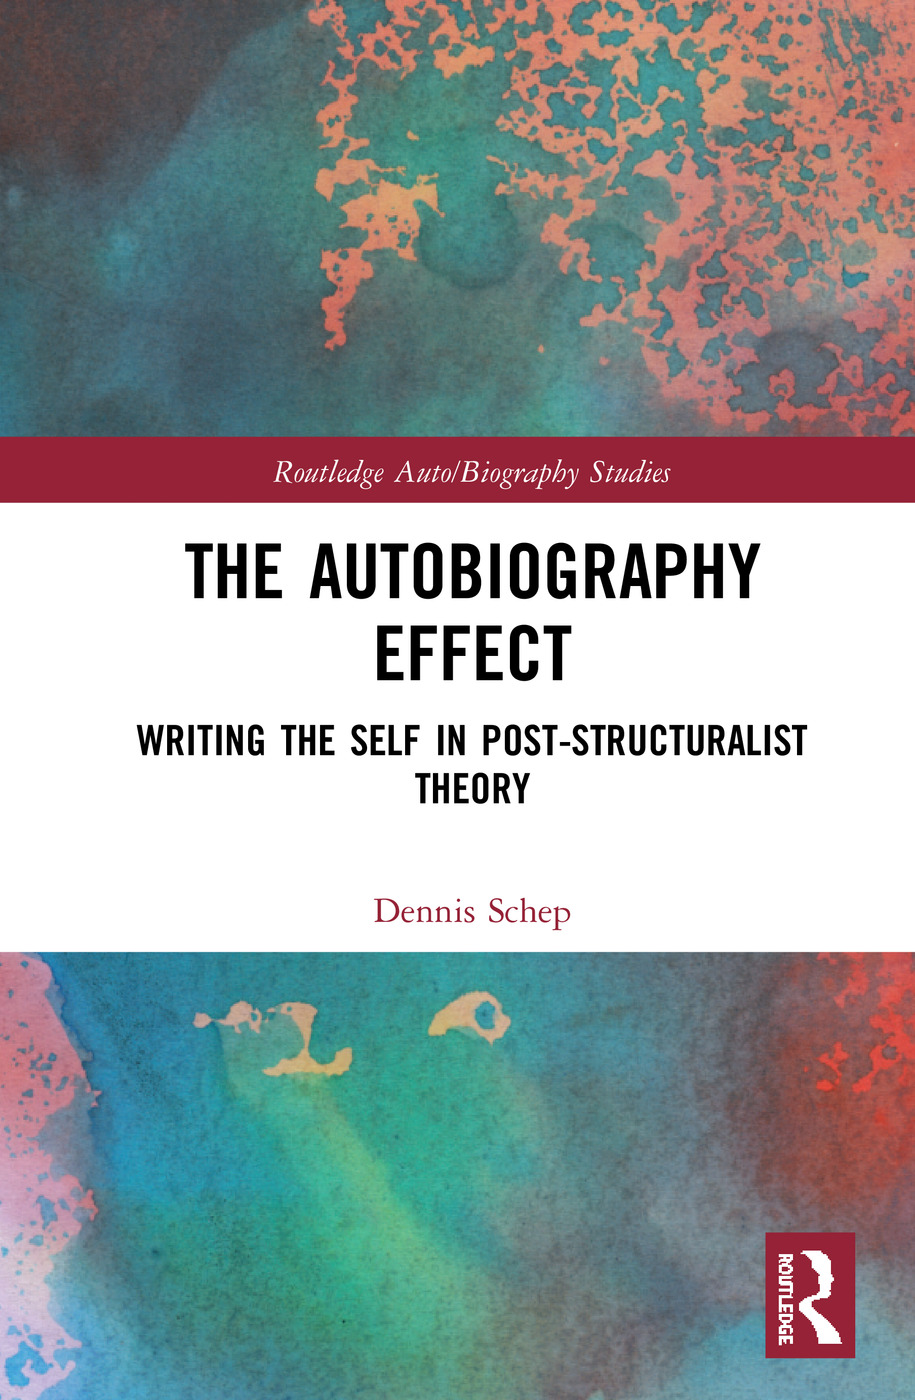 The Autobiography Effect: Writing the Self in Post-Structuralist Theory book cover